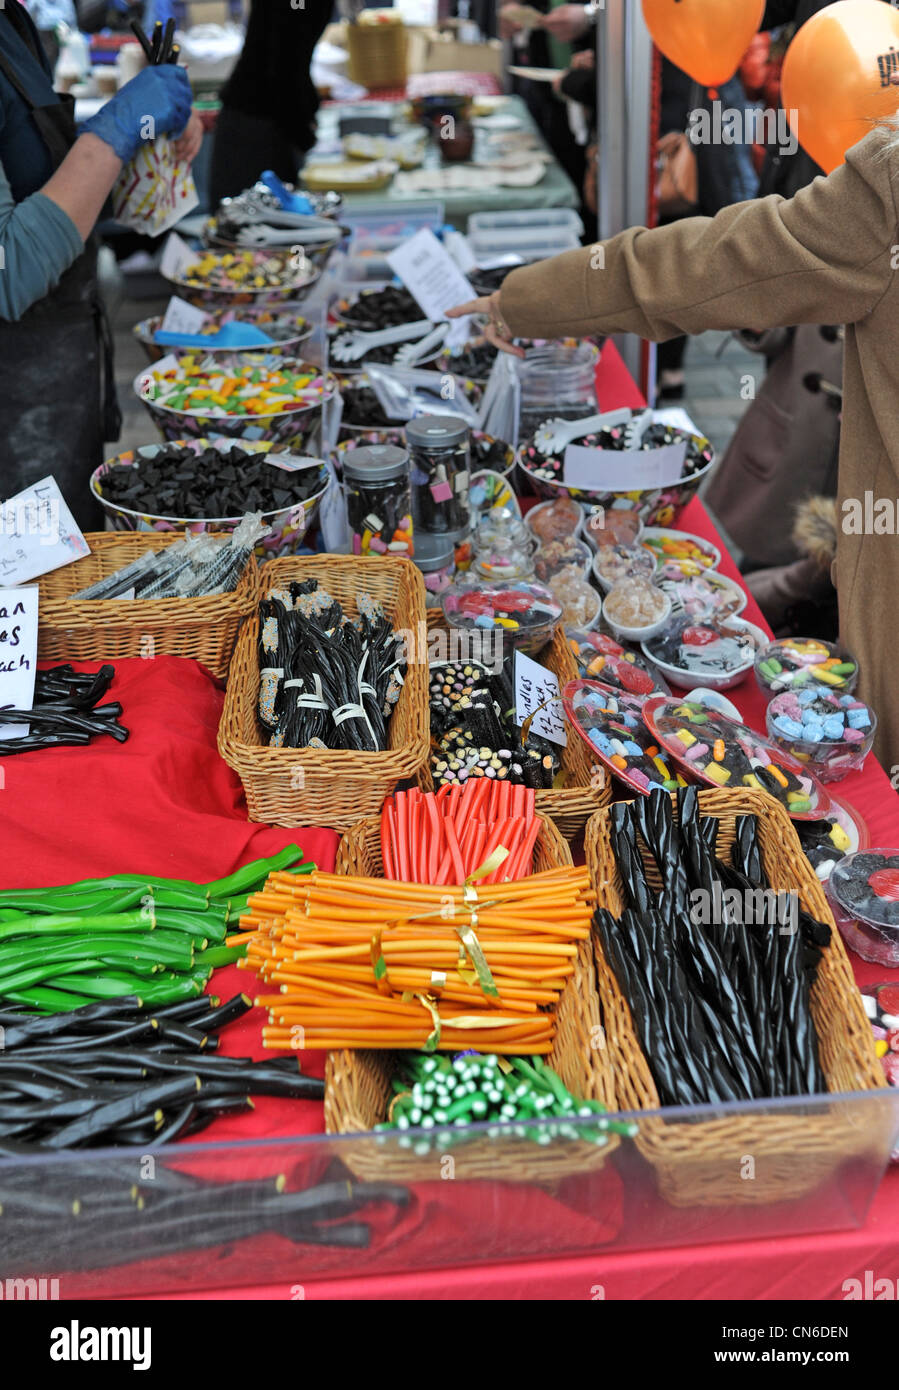 Liquorice sticks and sweets for sale at a stall at the Brighton and Hove City Food and Drink Festival over the Easter - Stock Image